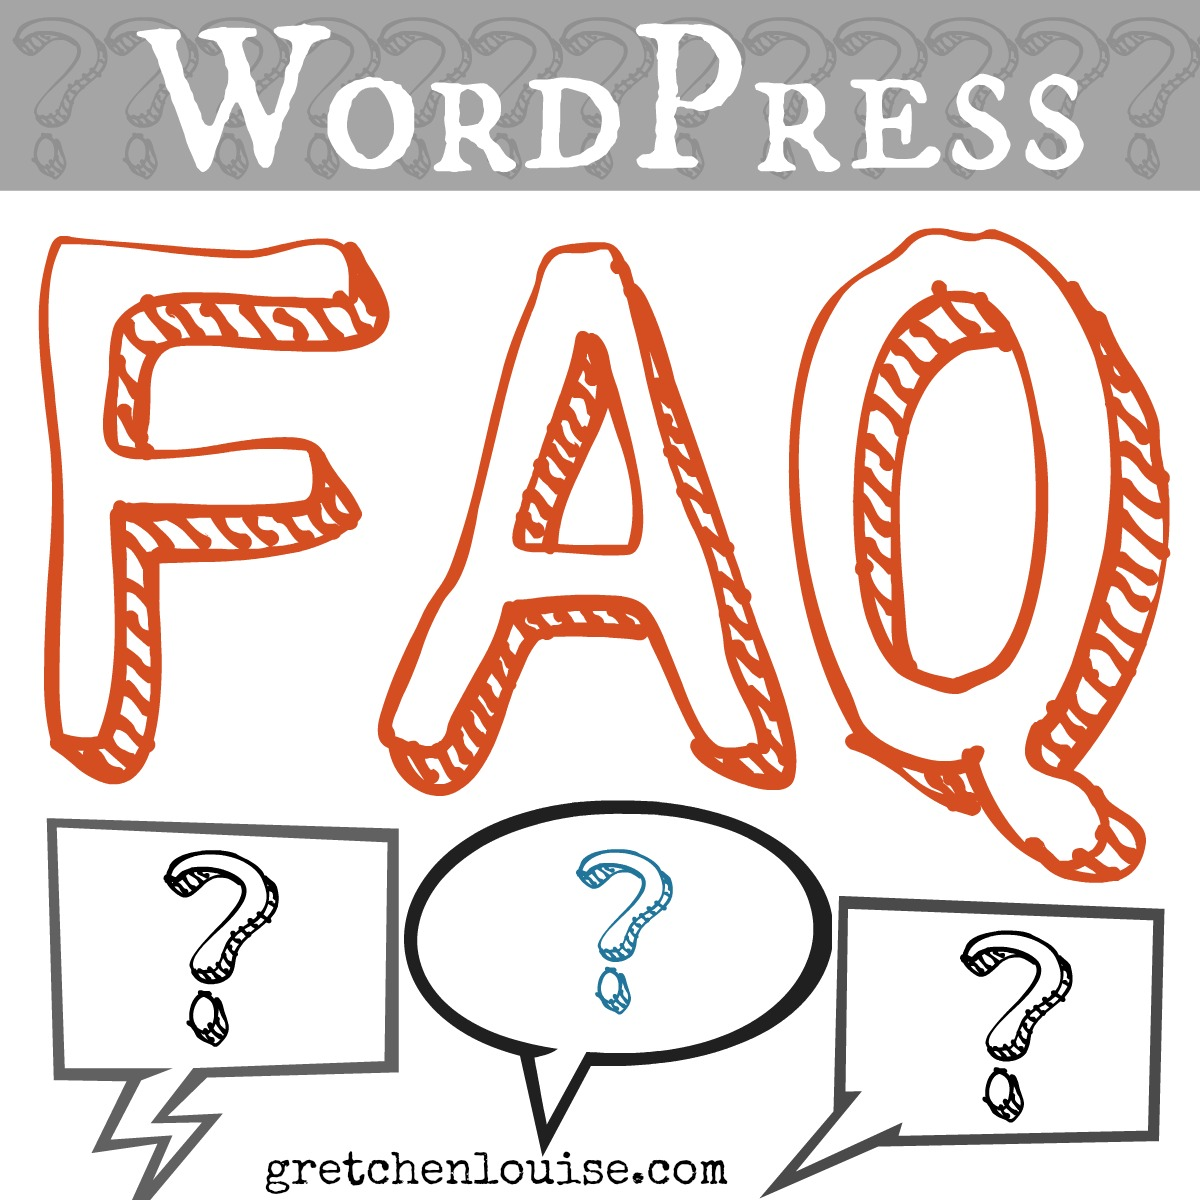 Your WordPress Questions, Answered